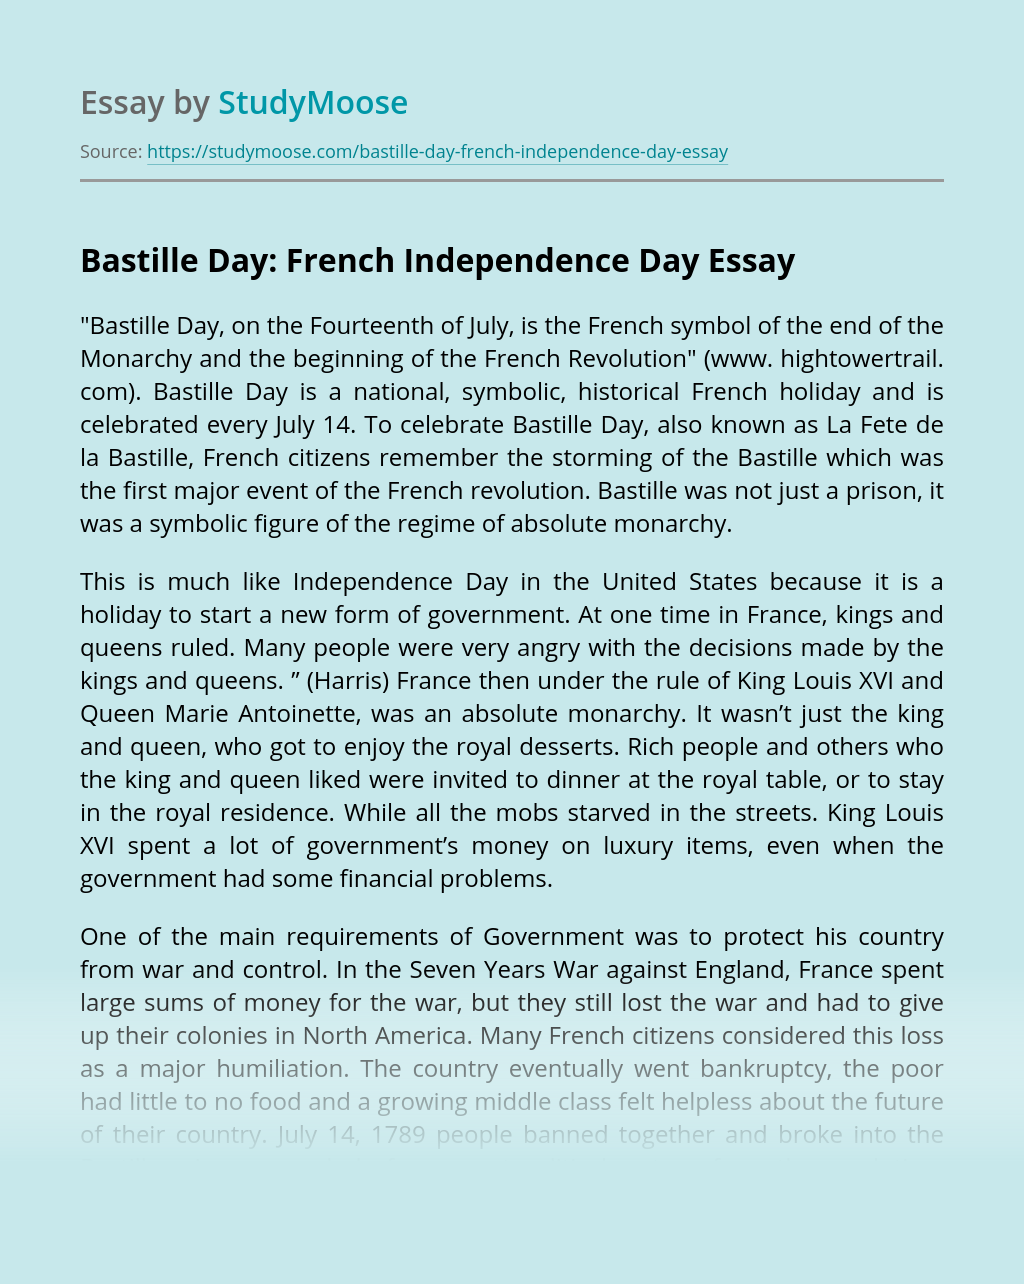 Bastille Day: French Independence Day